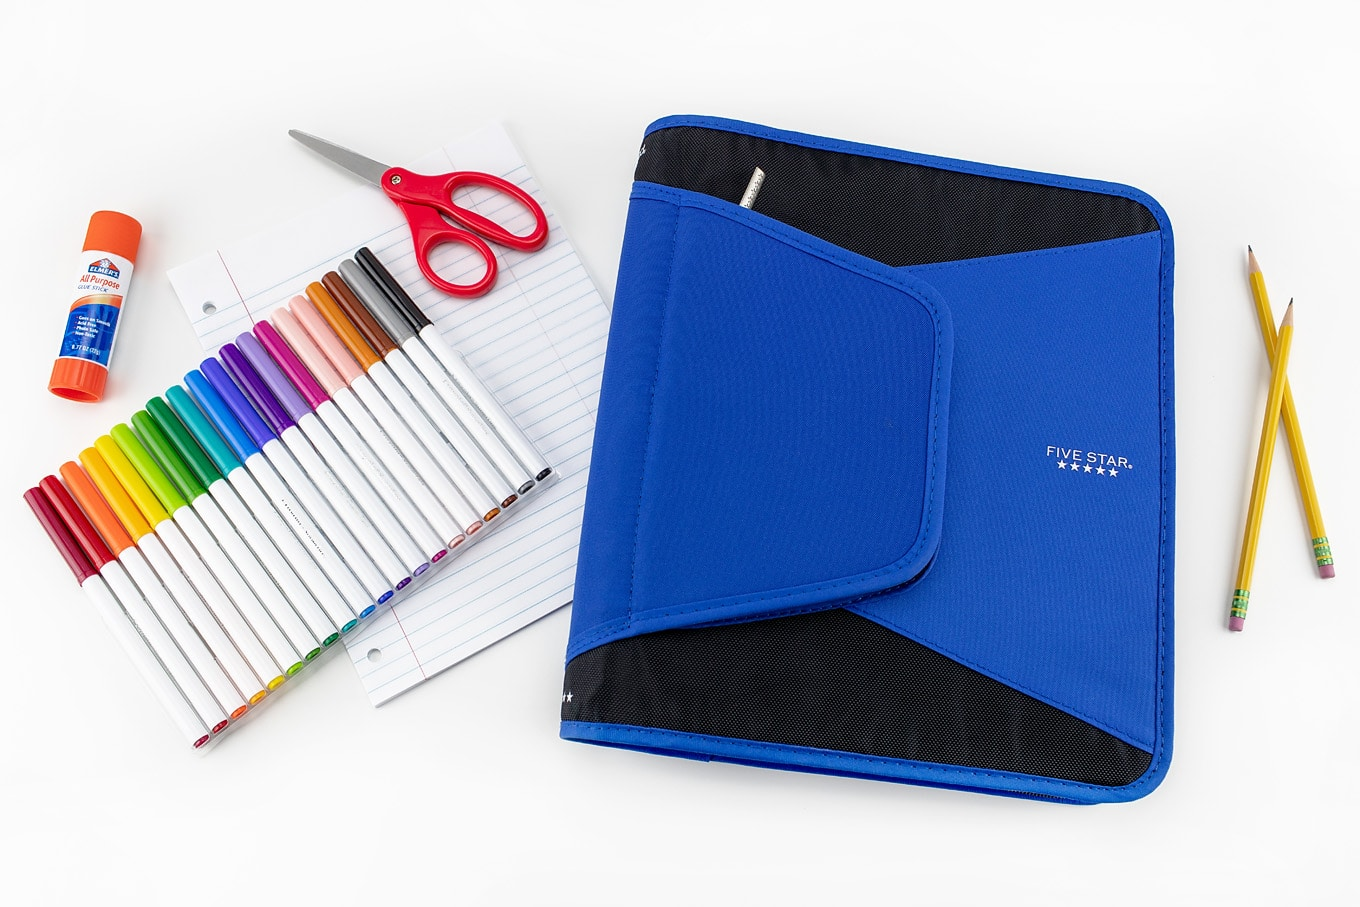 School Supplies and Homework Binder on a White Desk